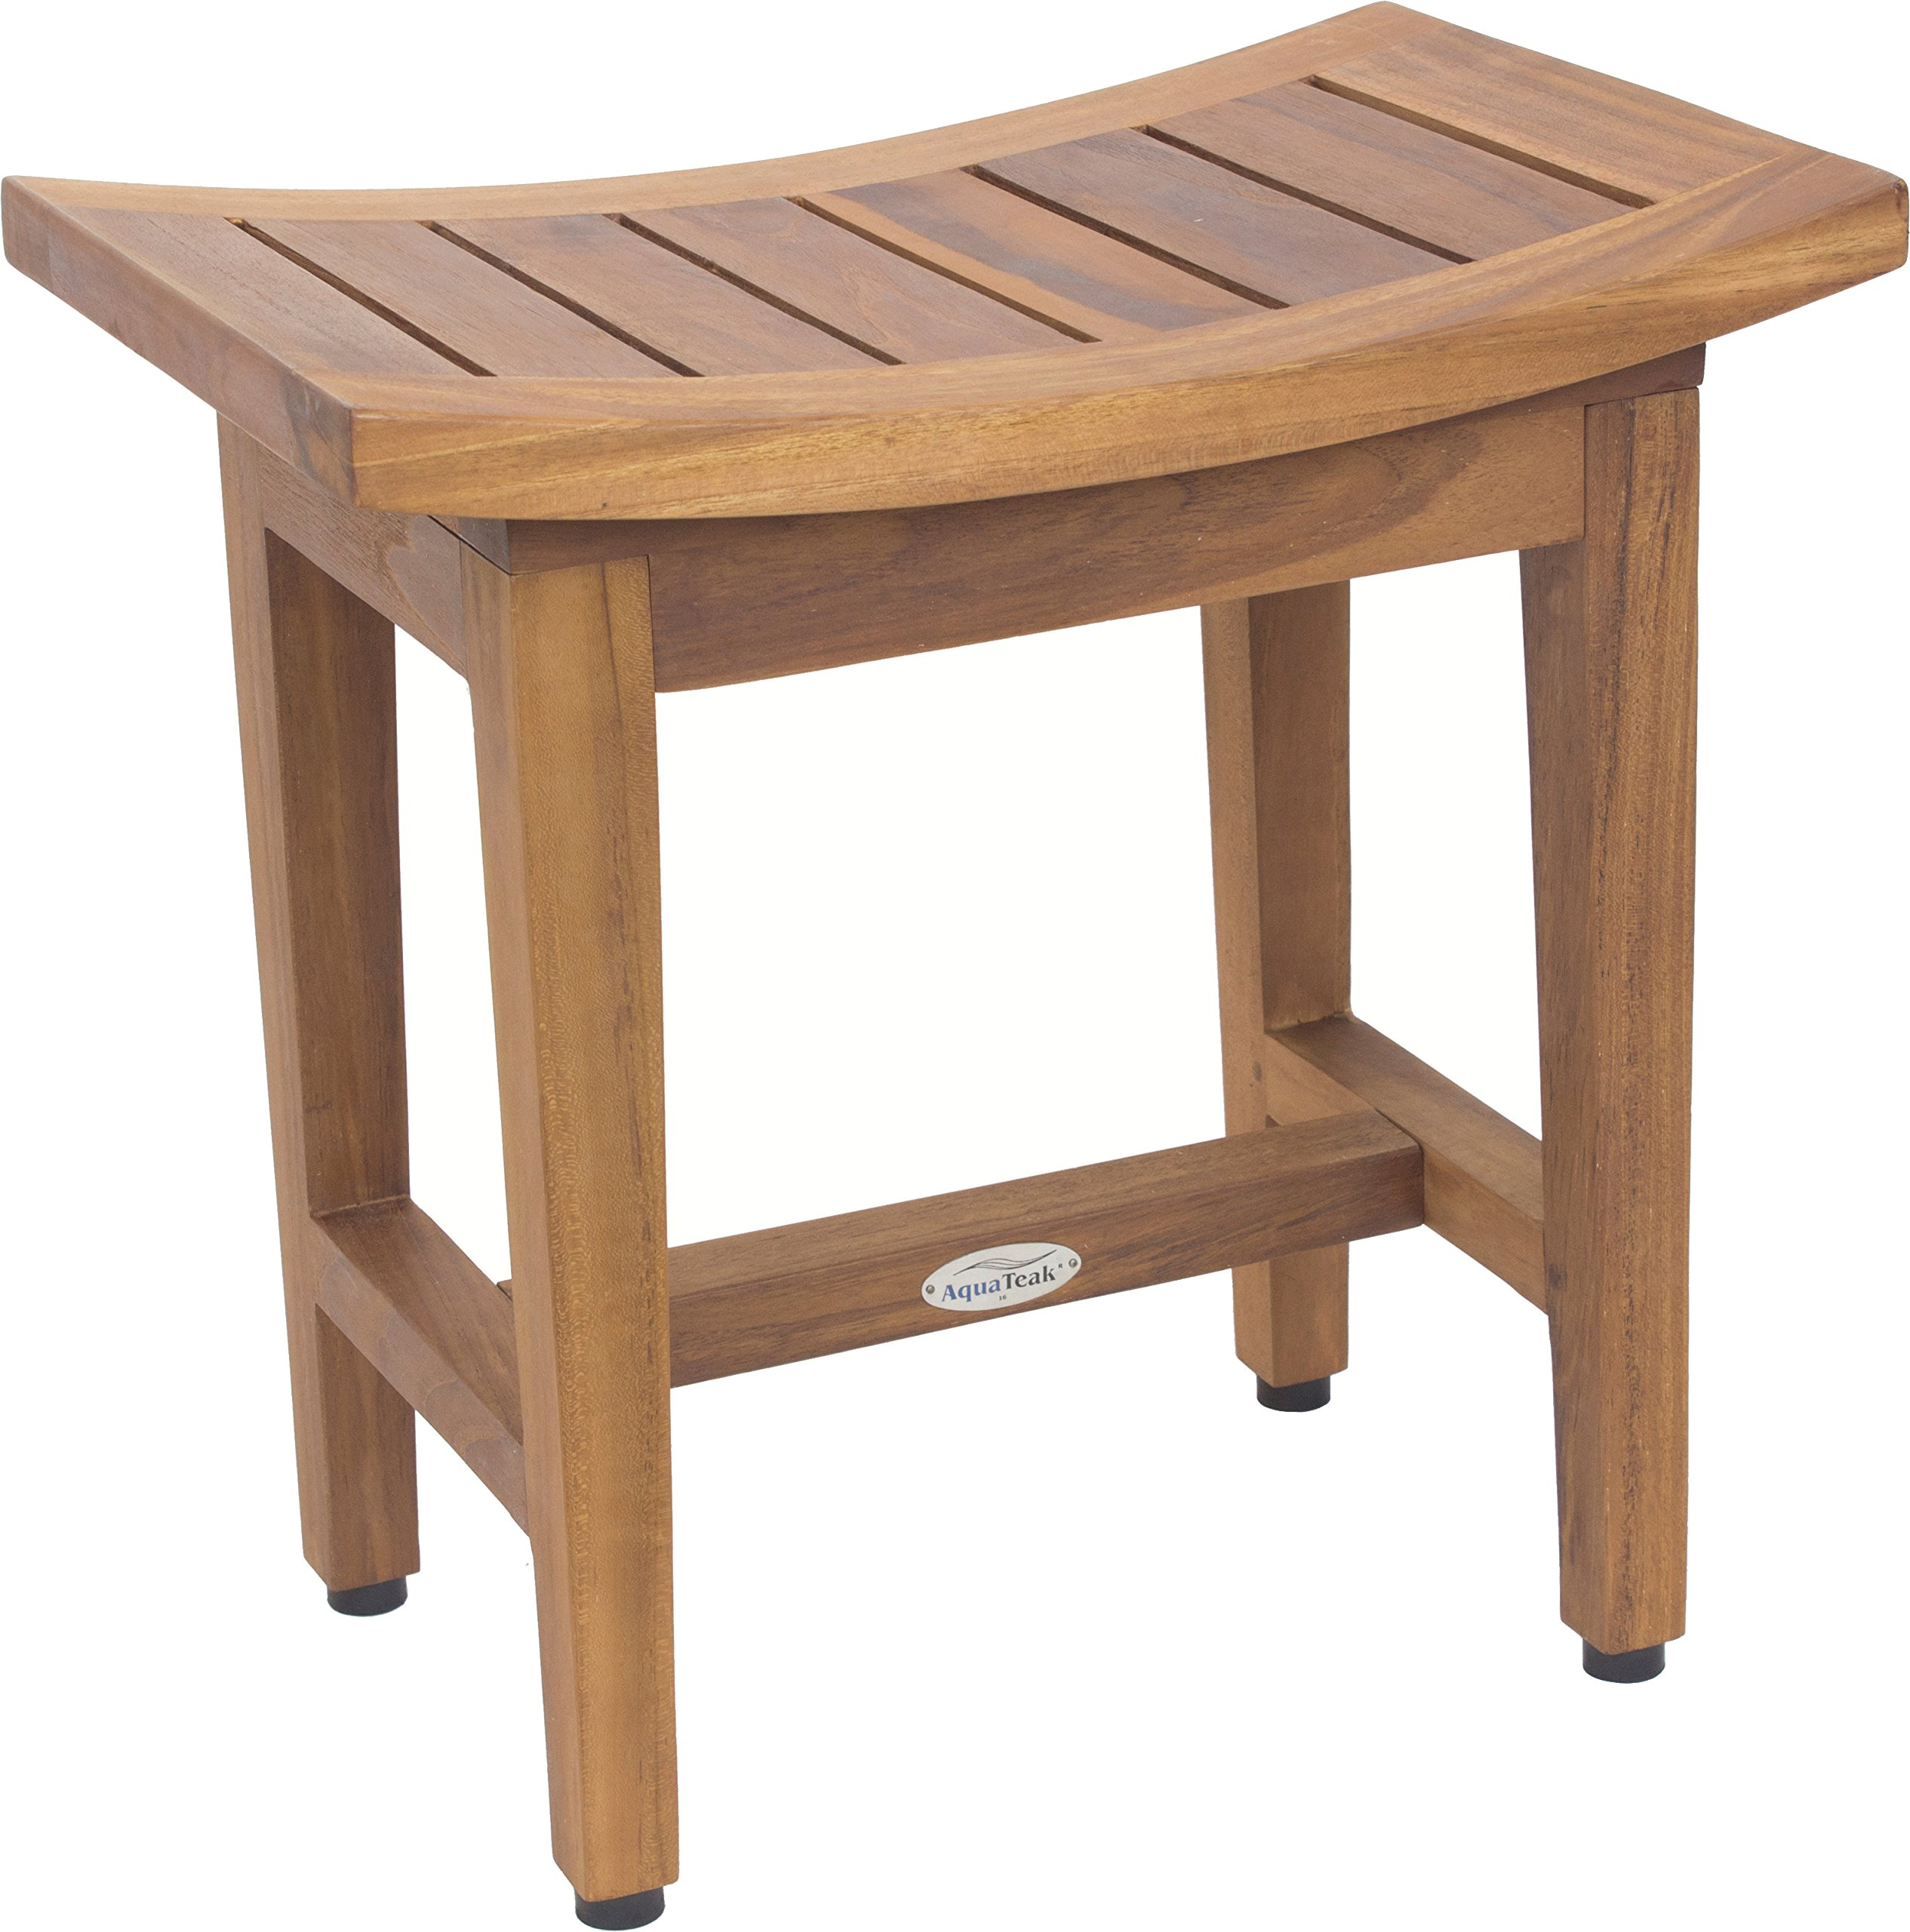 Maluku Lotus 18'' Teak Shower Bench